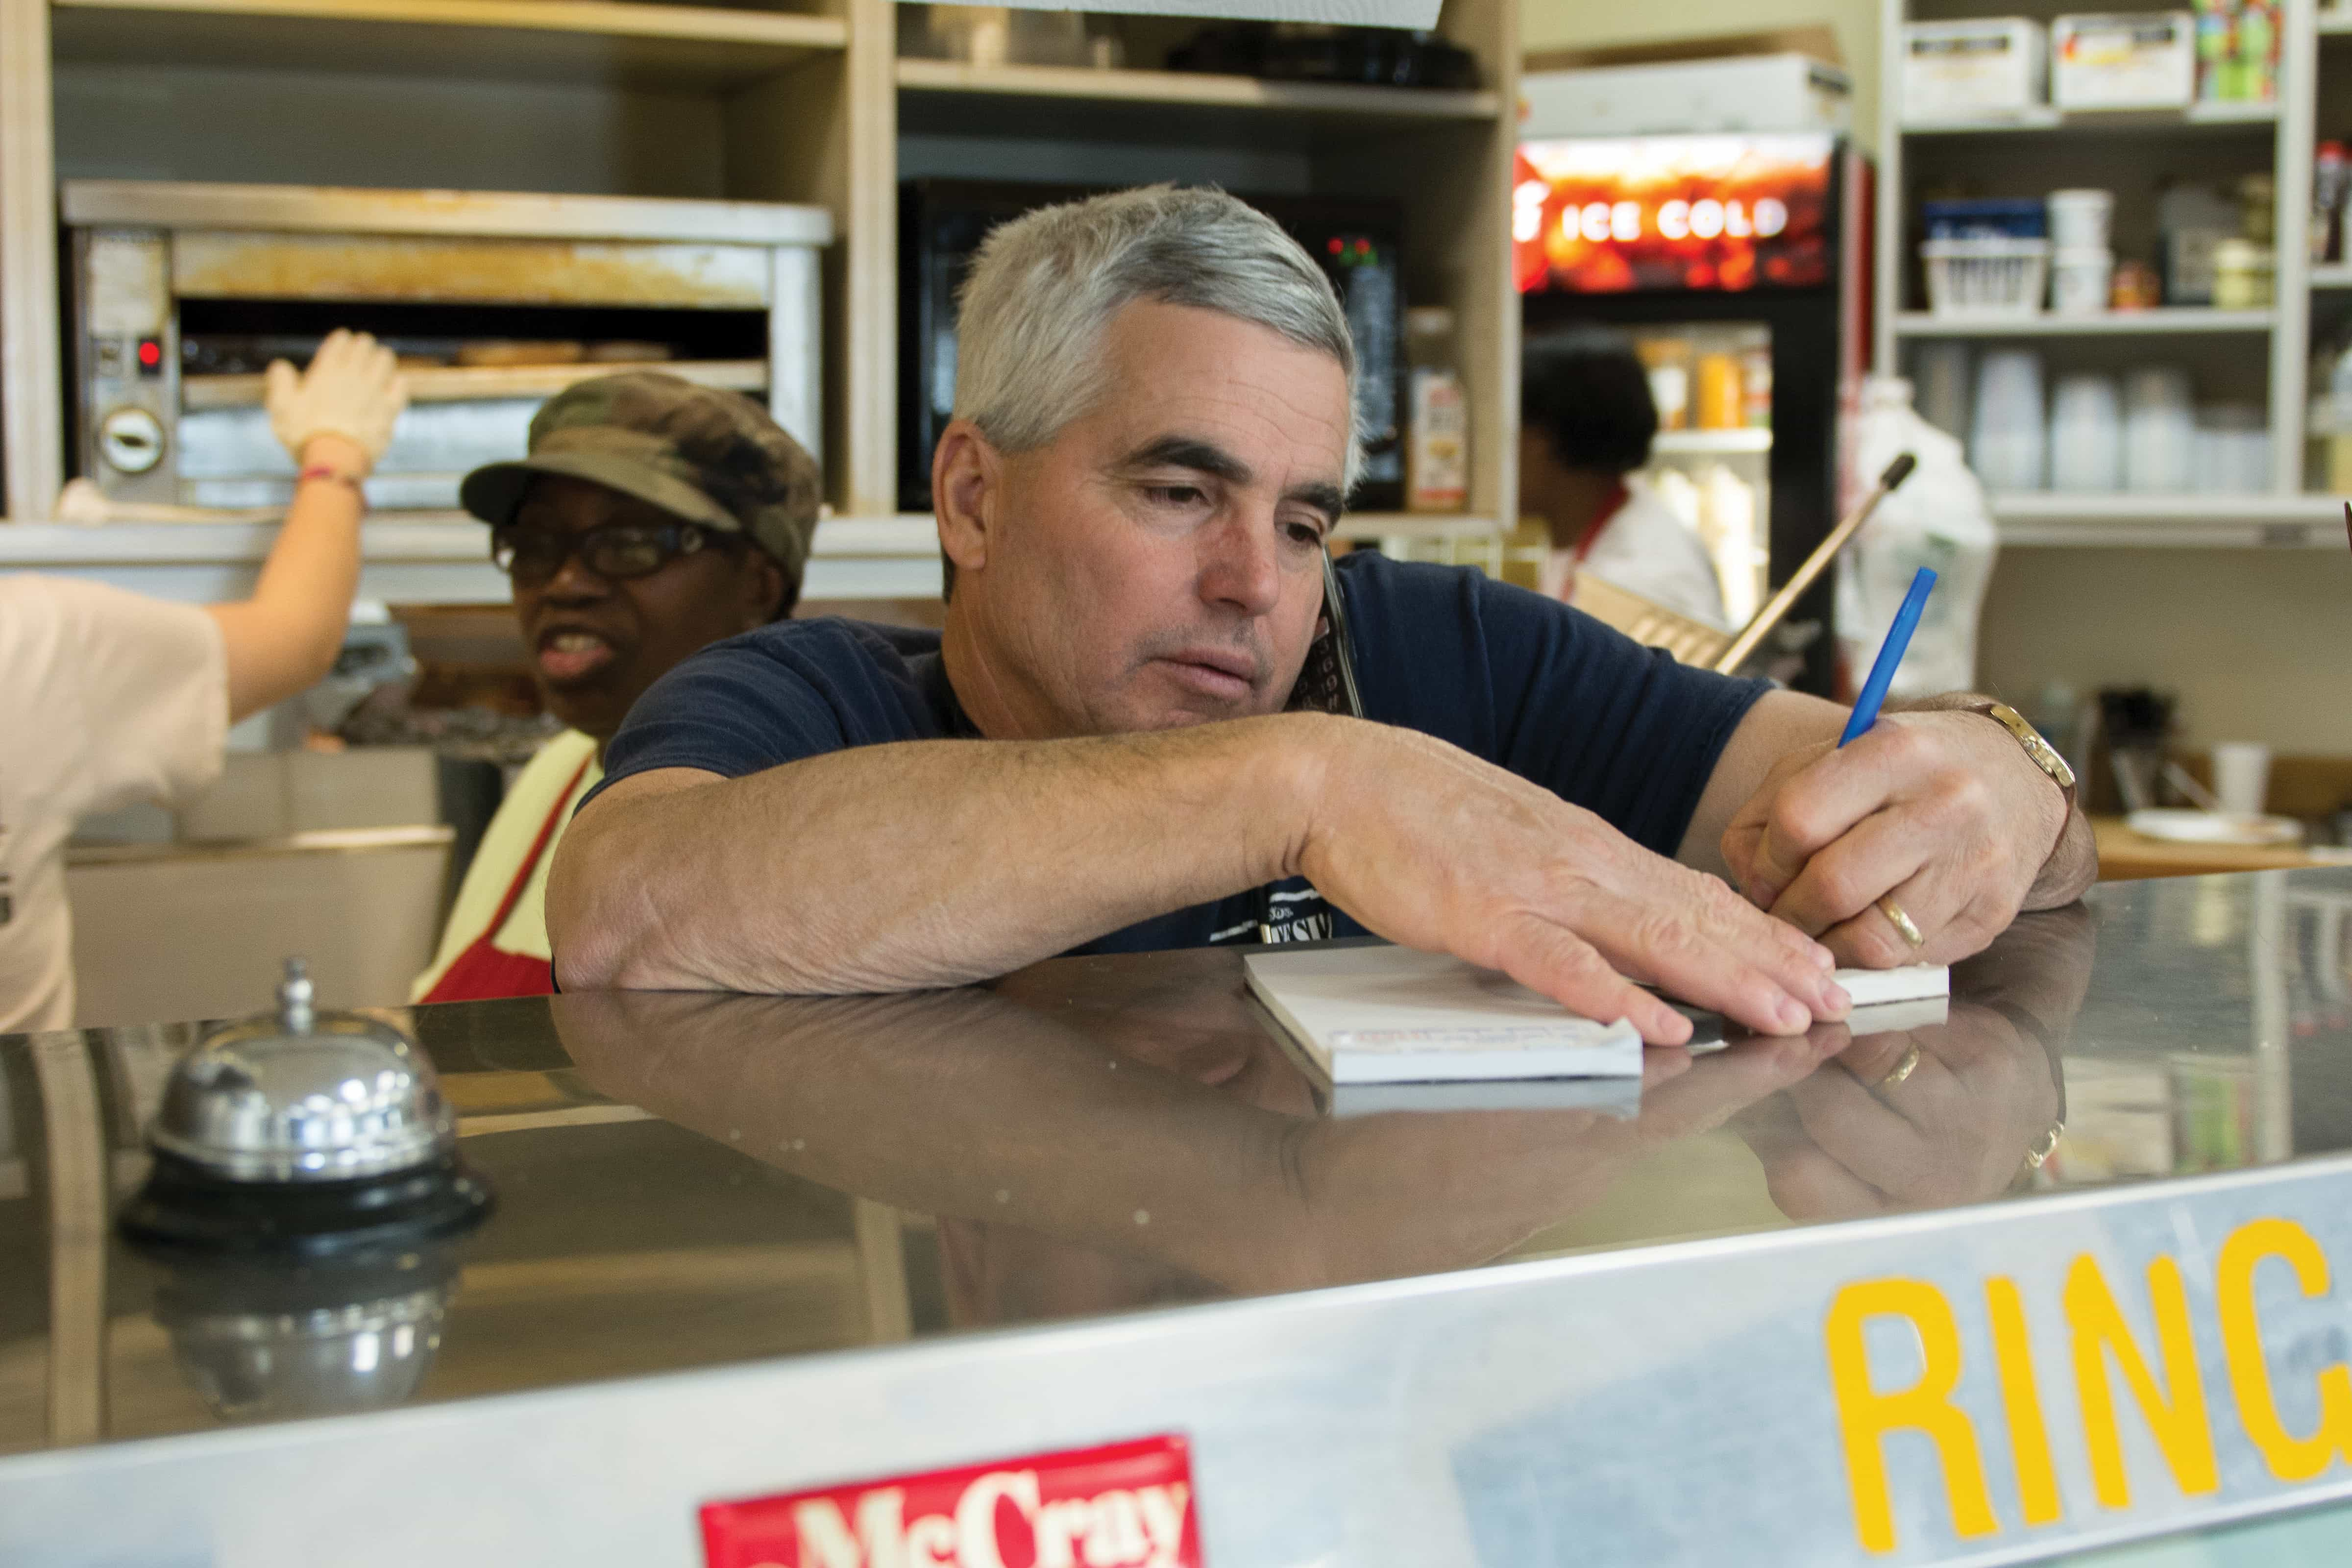 Kenny Fratesi takes customer's orders over the phone.